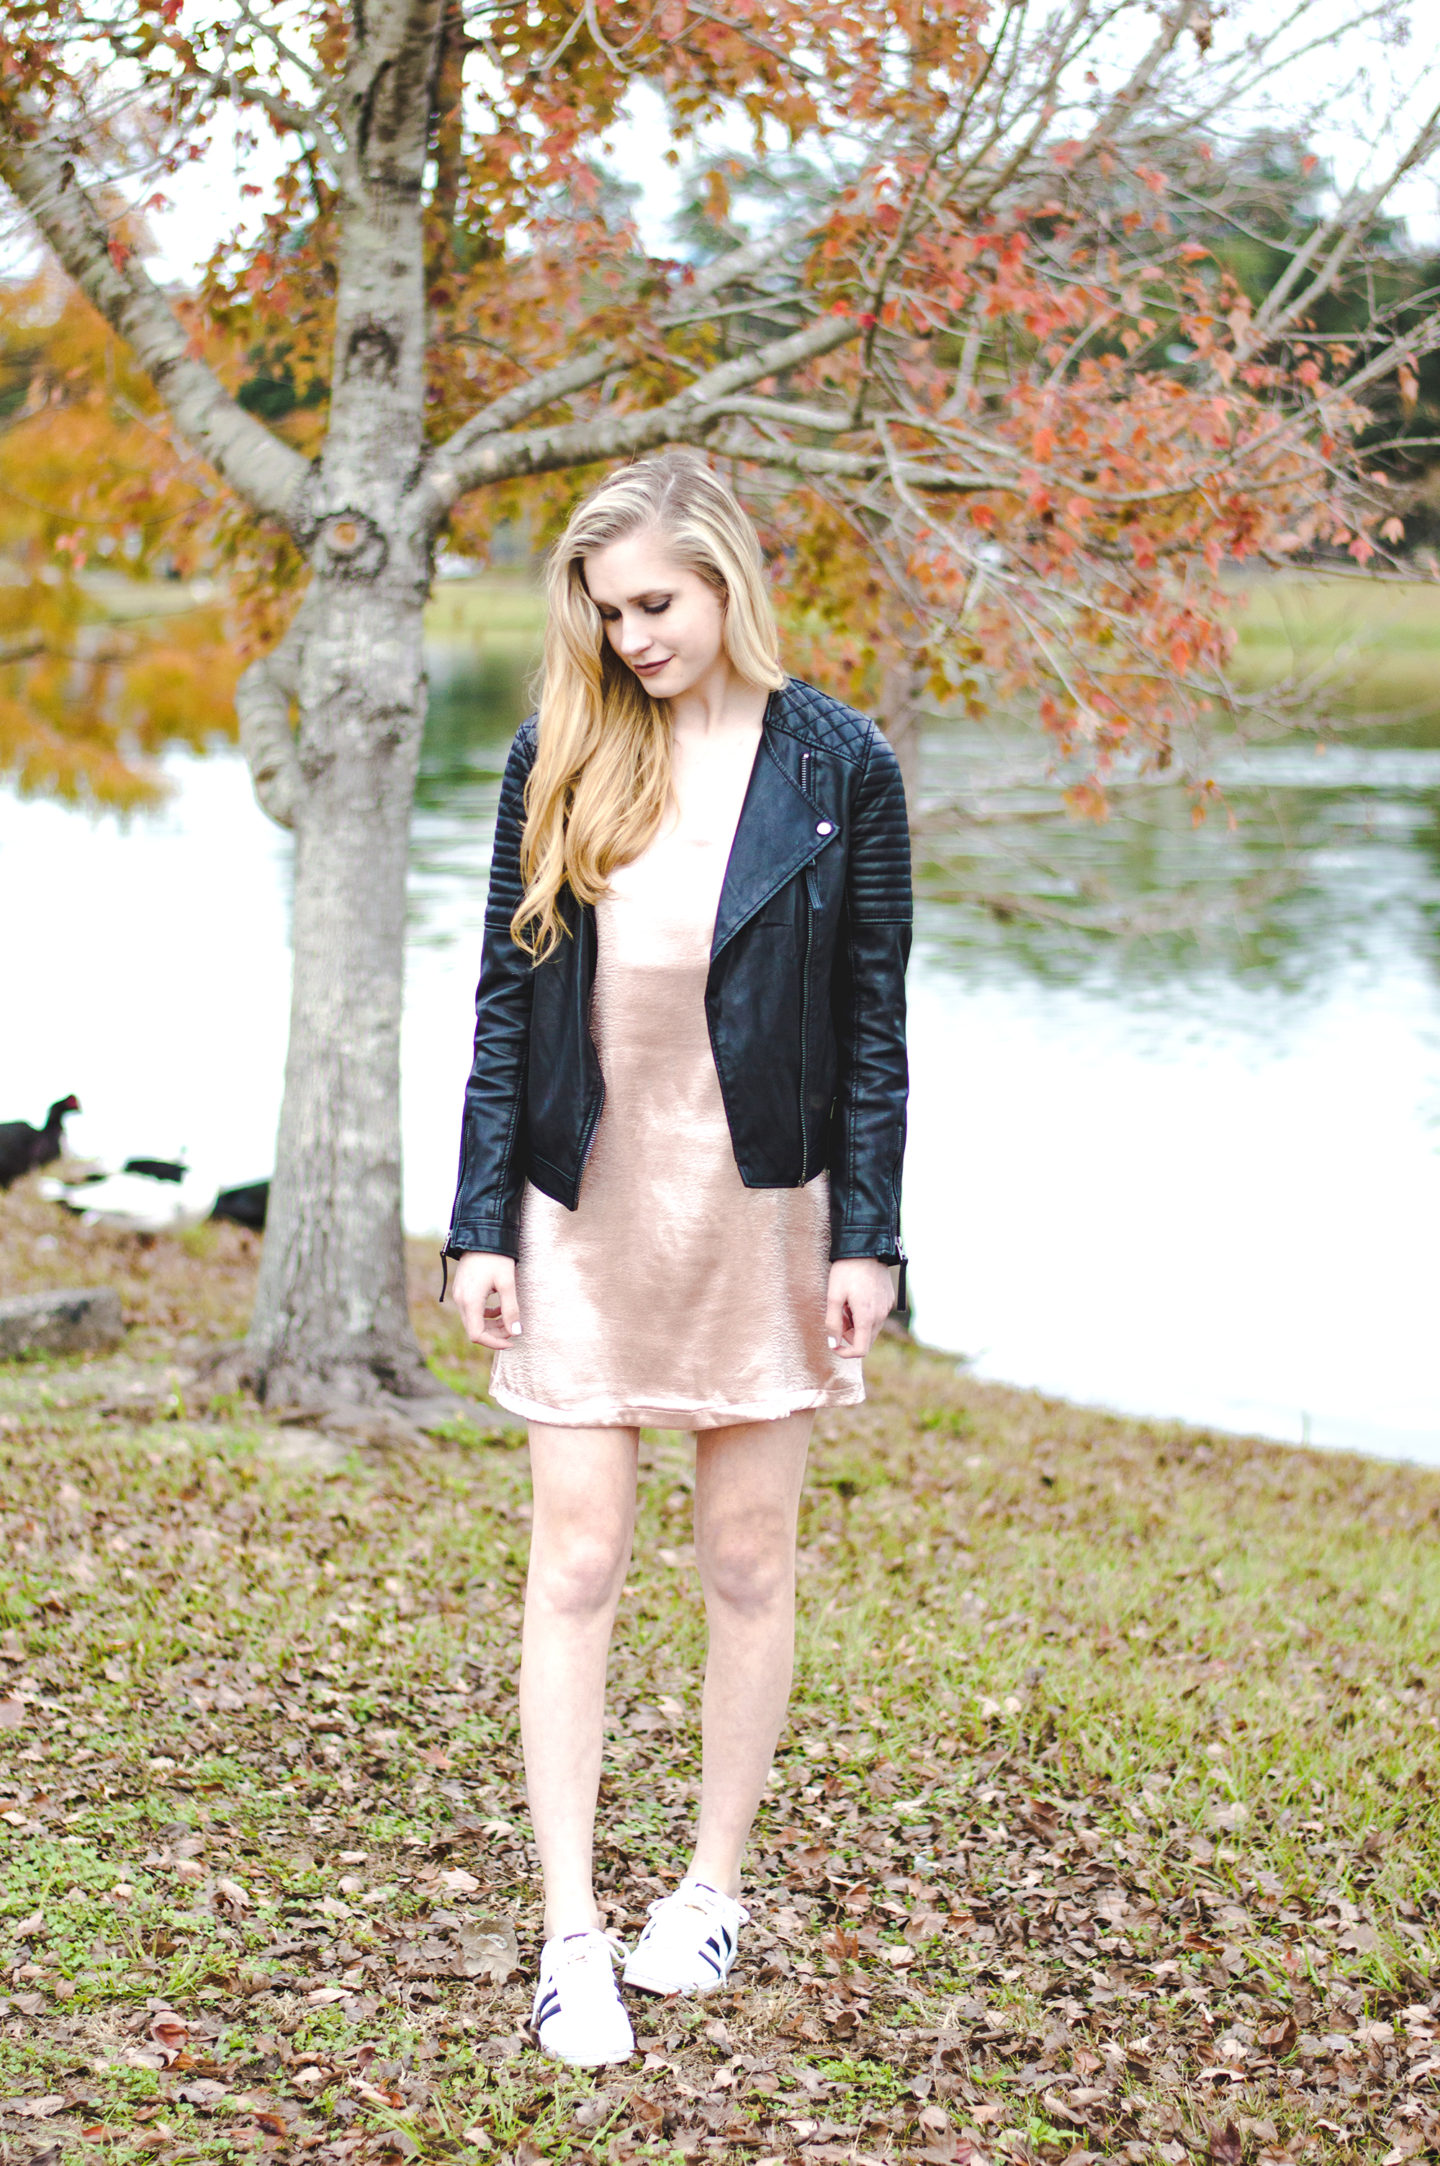 Channeling Cher Horowitz: Blush is the New Black